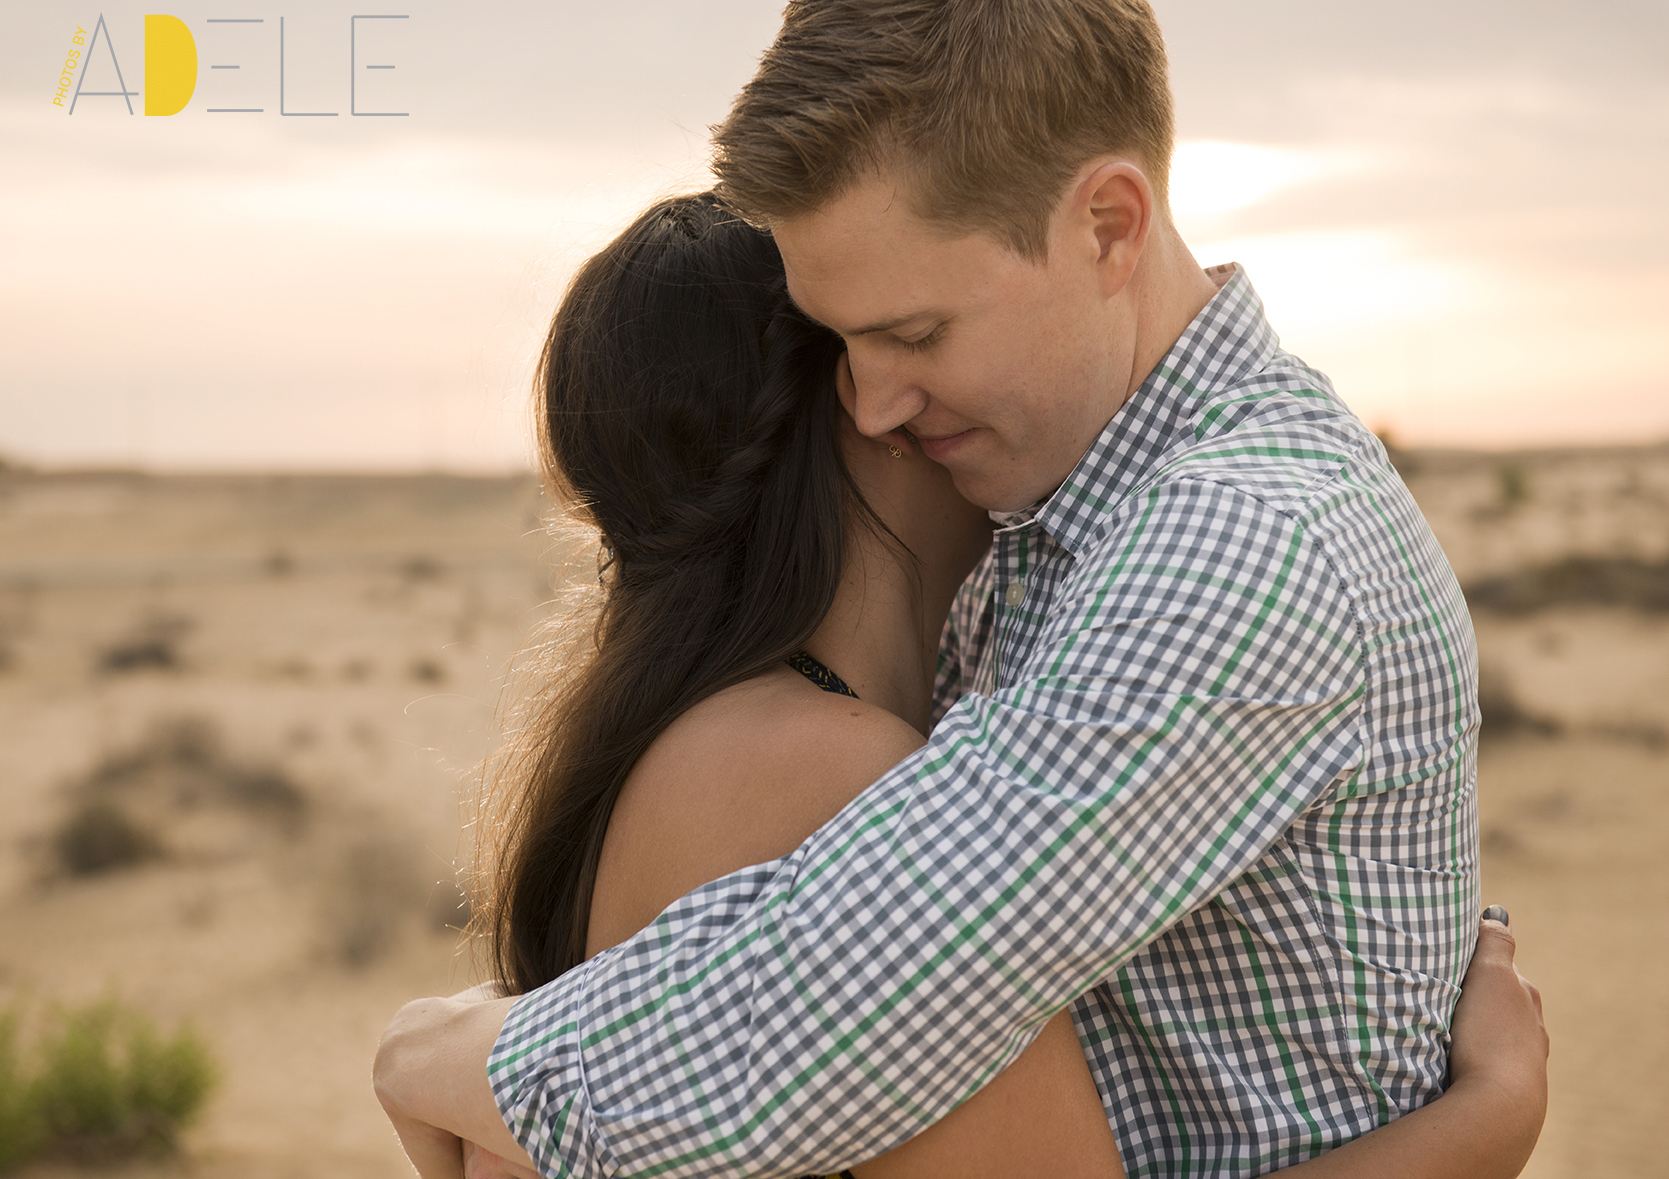 Calgary Wedding photographer, photos by adele, travels to Dubai